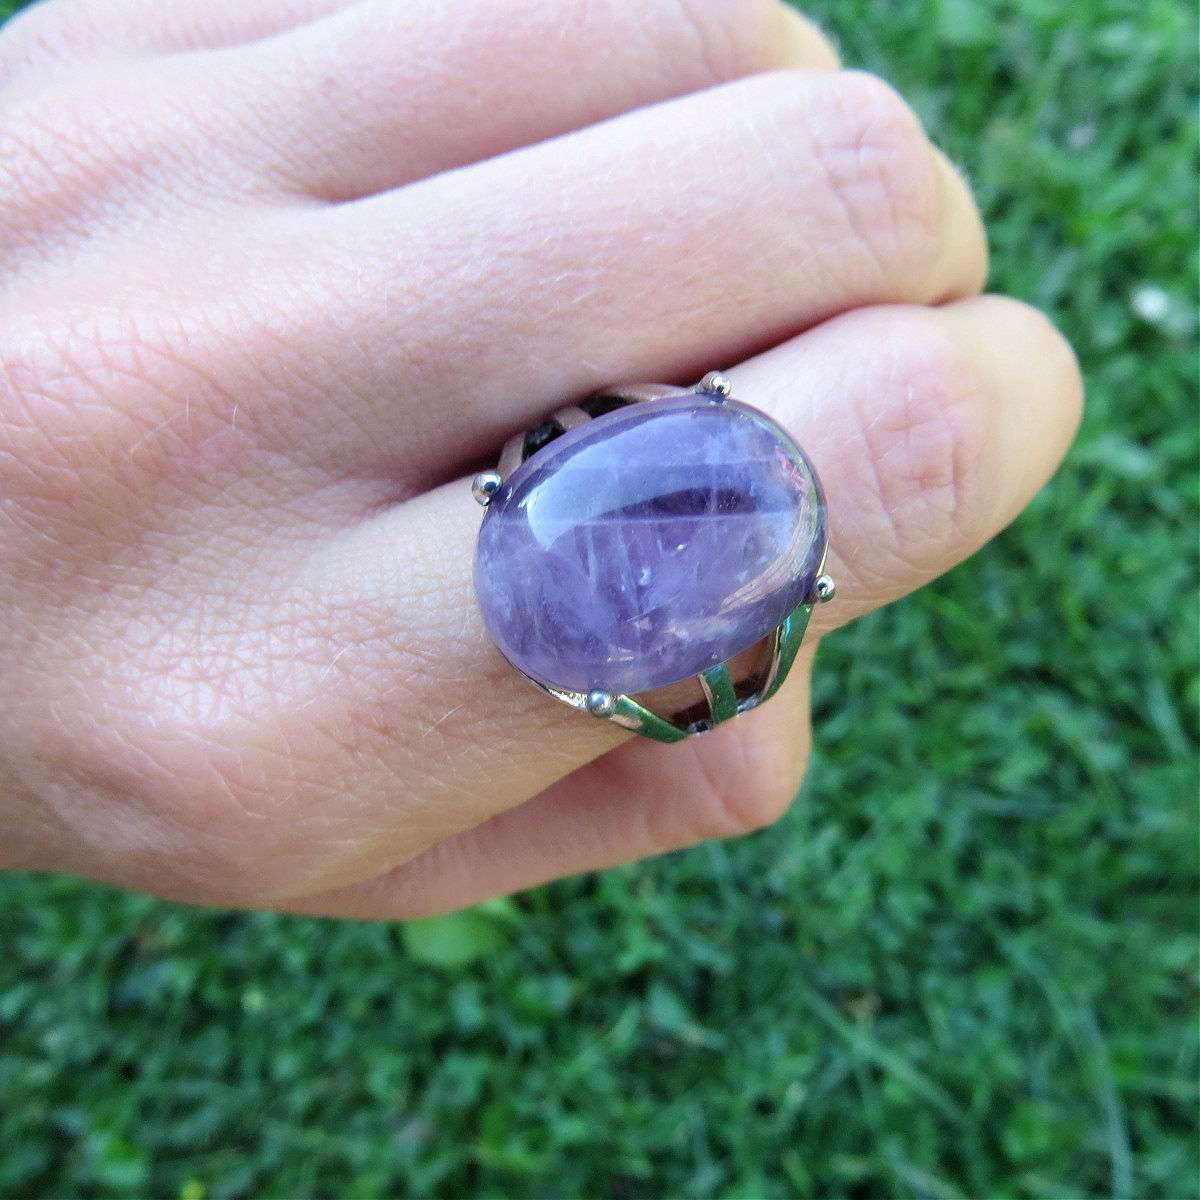 Purple Amethyst Crystal Ring in Silver - Adjustable Band